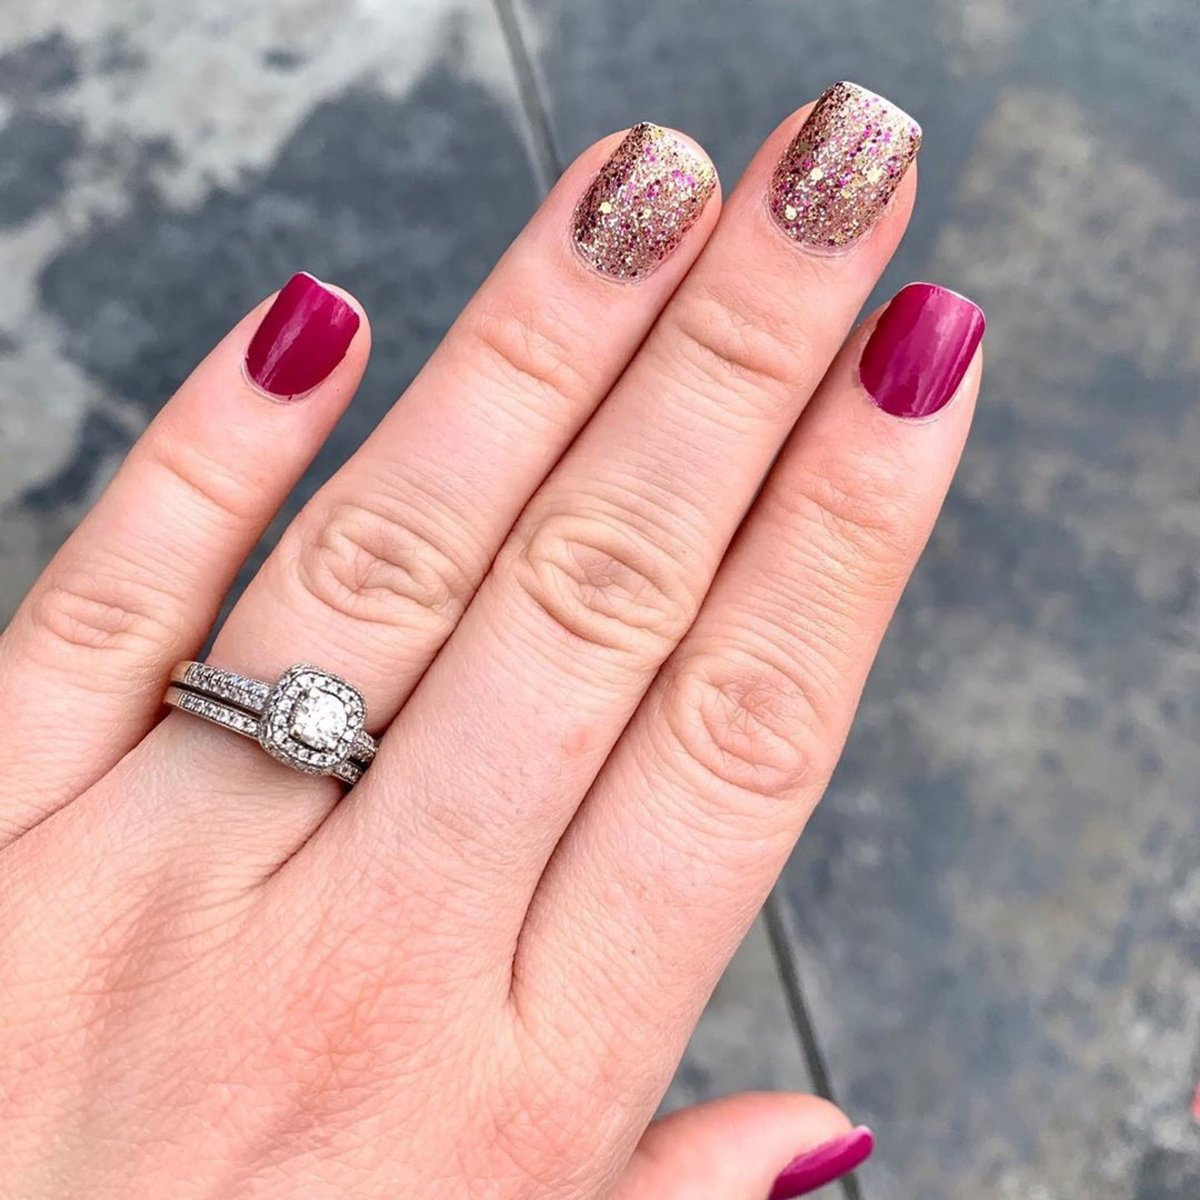 Color Street On Twitter Flawless Mixed Mani What Color Street Shades Are You Mixing Today Mixedmanimonday Shades Shown Munich Mulberry Tokyo Lights Sassynailswithsara Https T Co 5kfgqqpgum